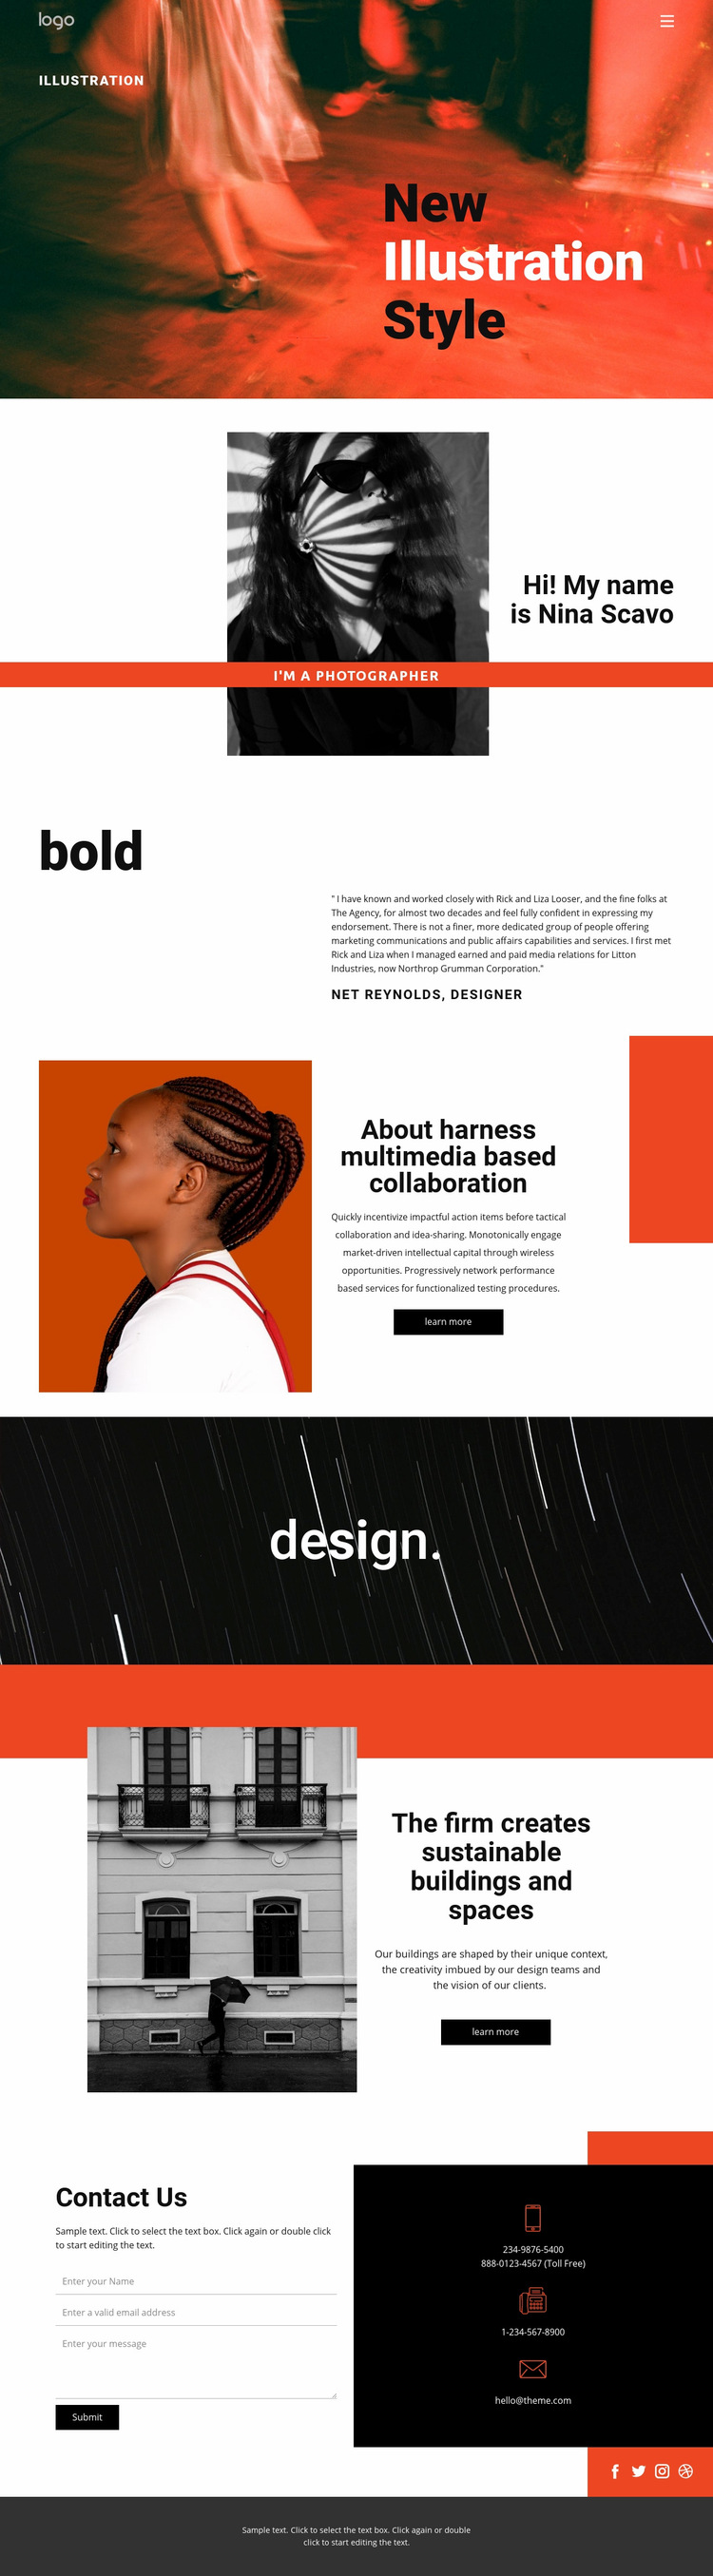 Illustration styles for art  Web Page Design